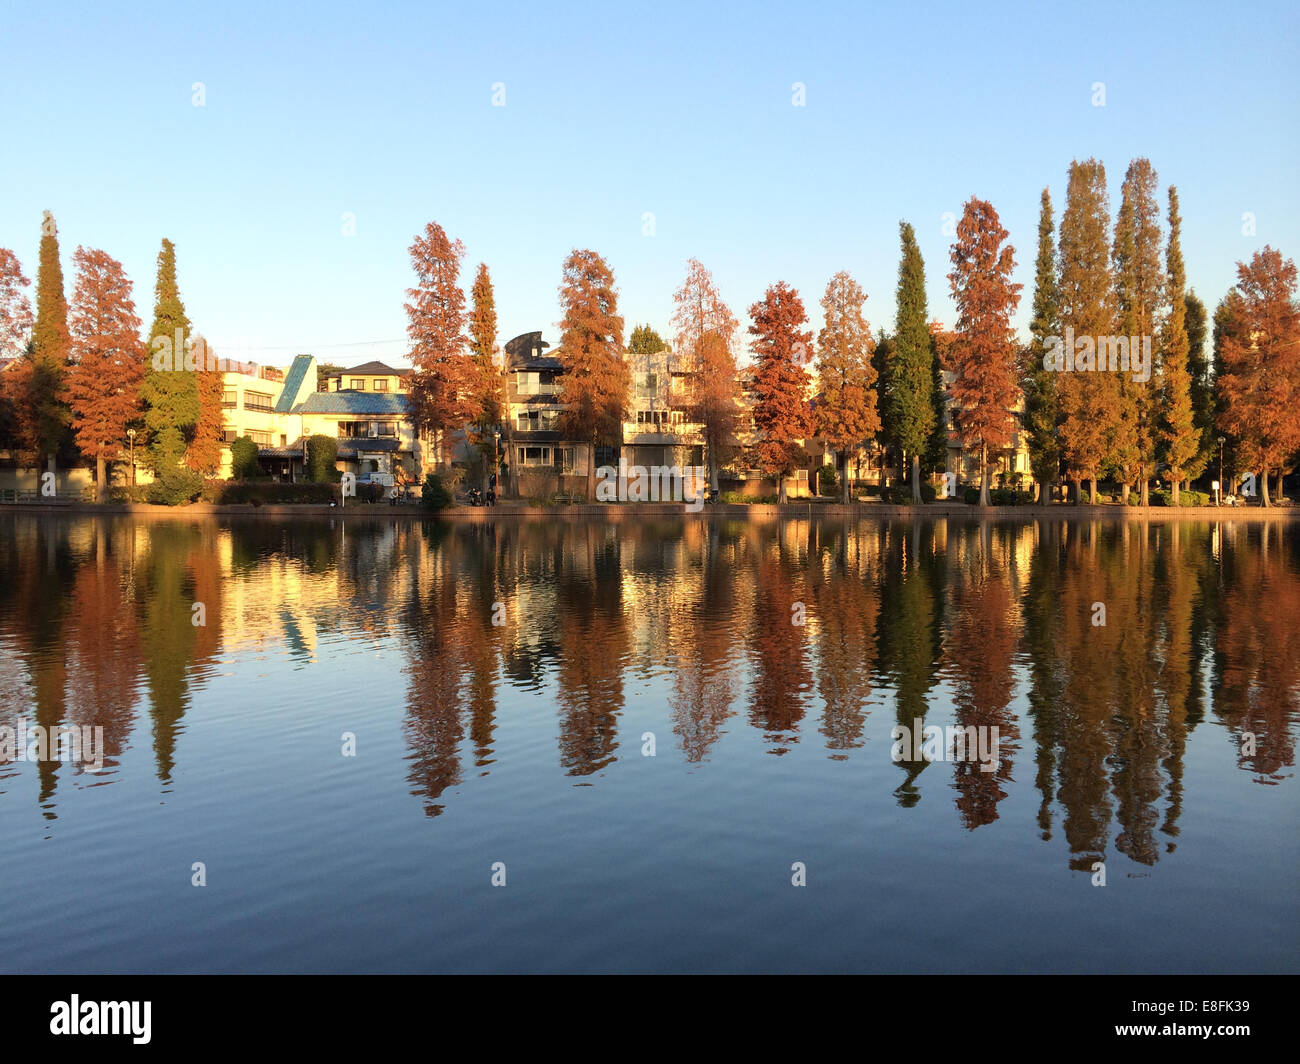 Trees And Houses By The River - Stock Image